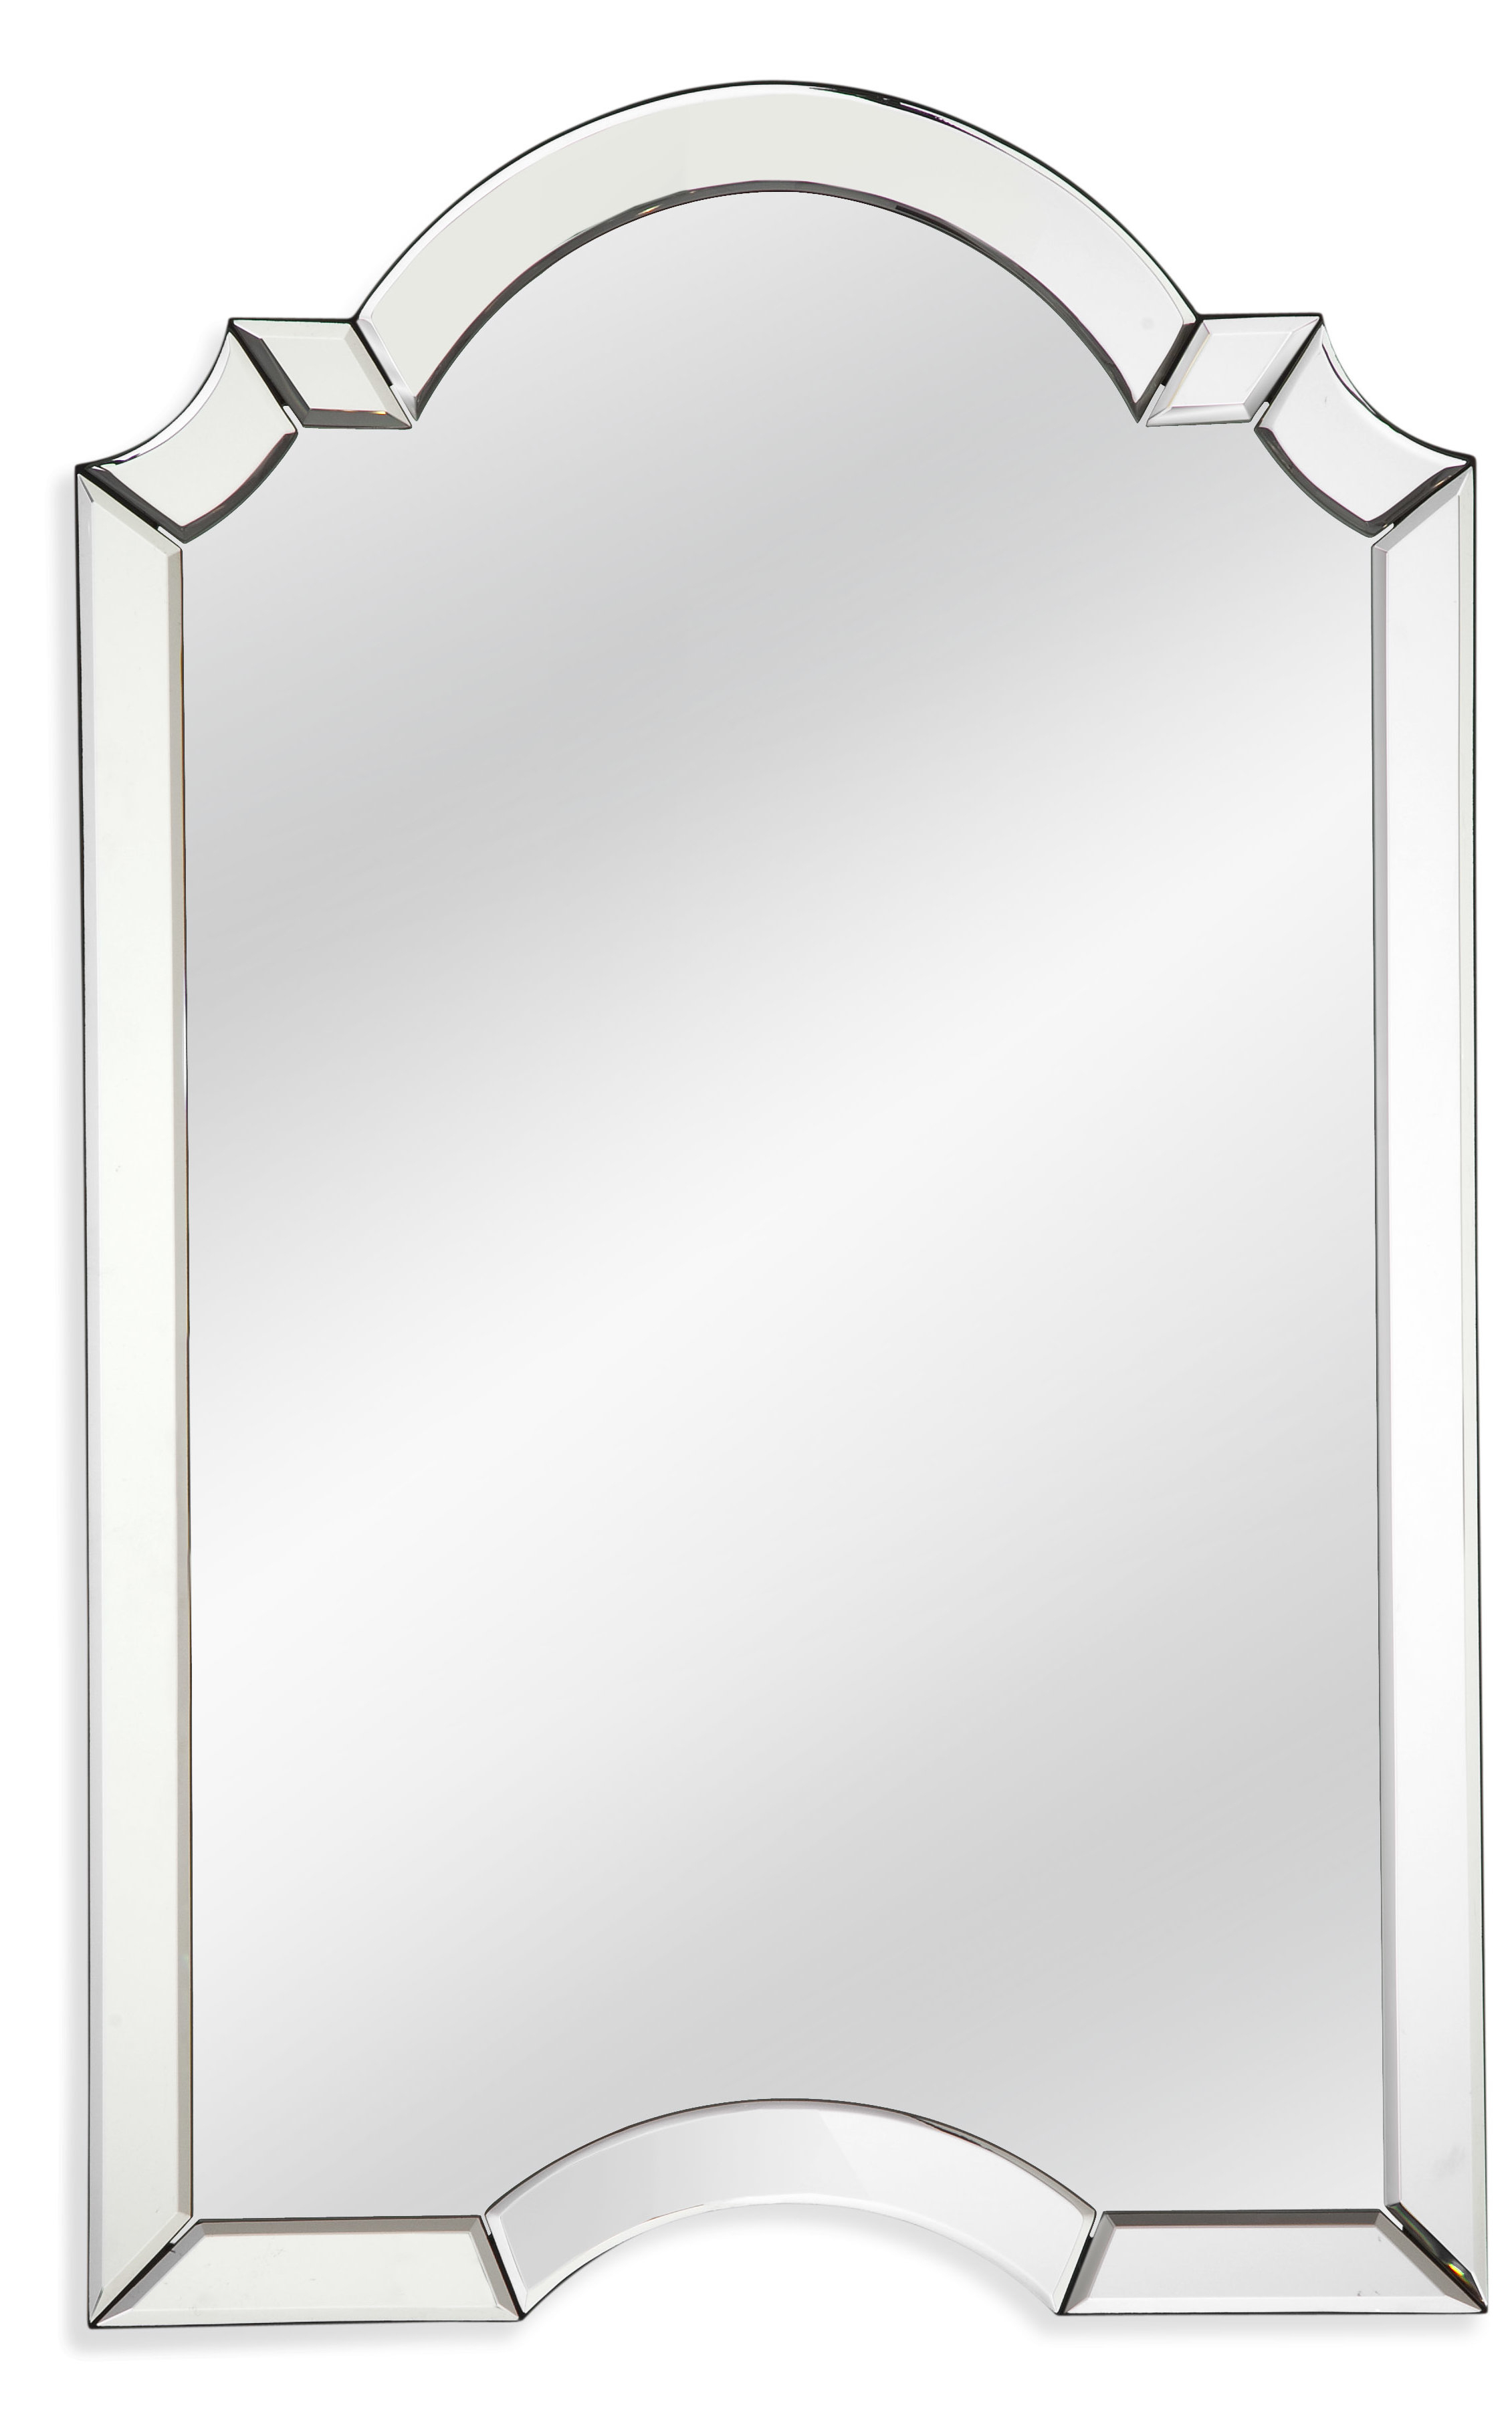 Ekaterina Arch/crowned Top Wall Mirror With Ekaterina Arch/crowned Top Wall Mirrors (Gallery 2 of 30)